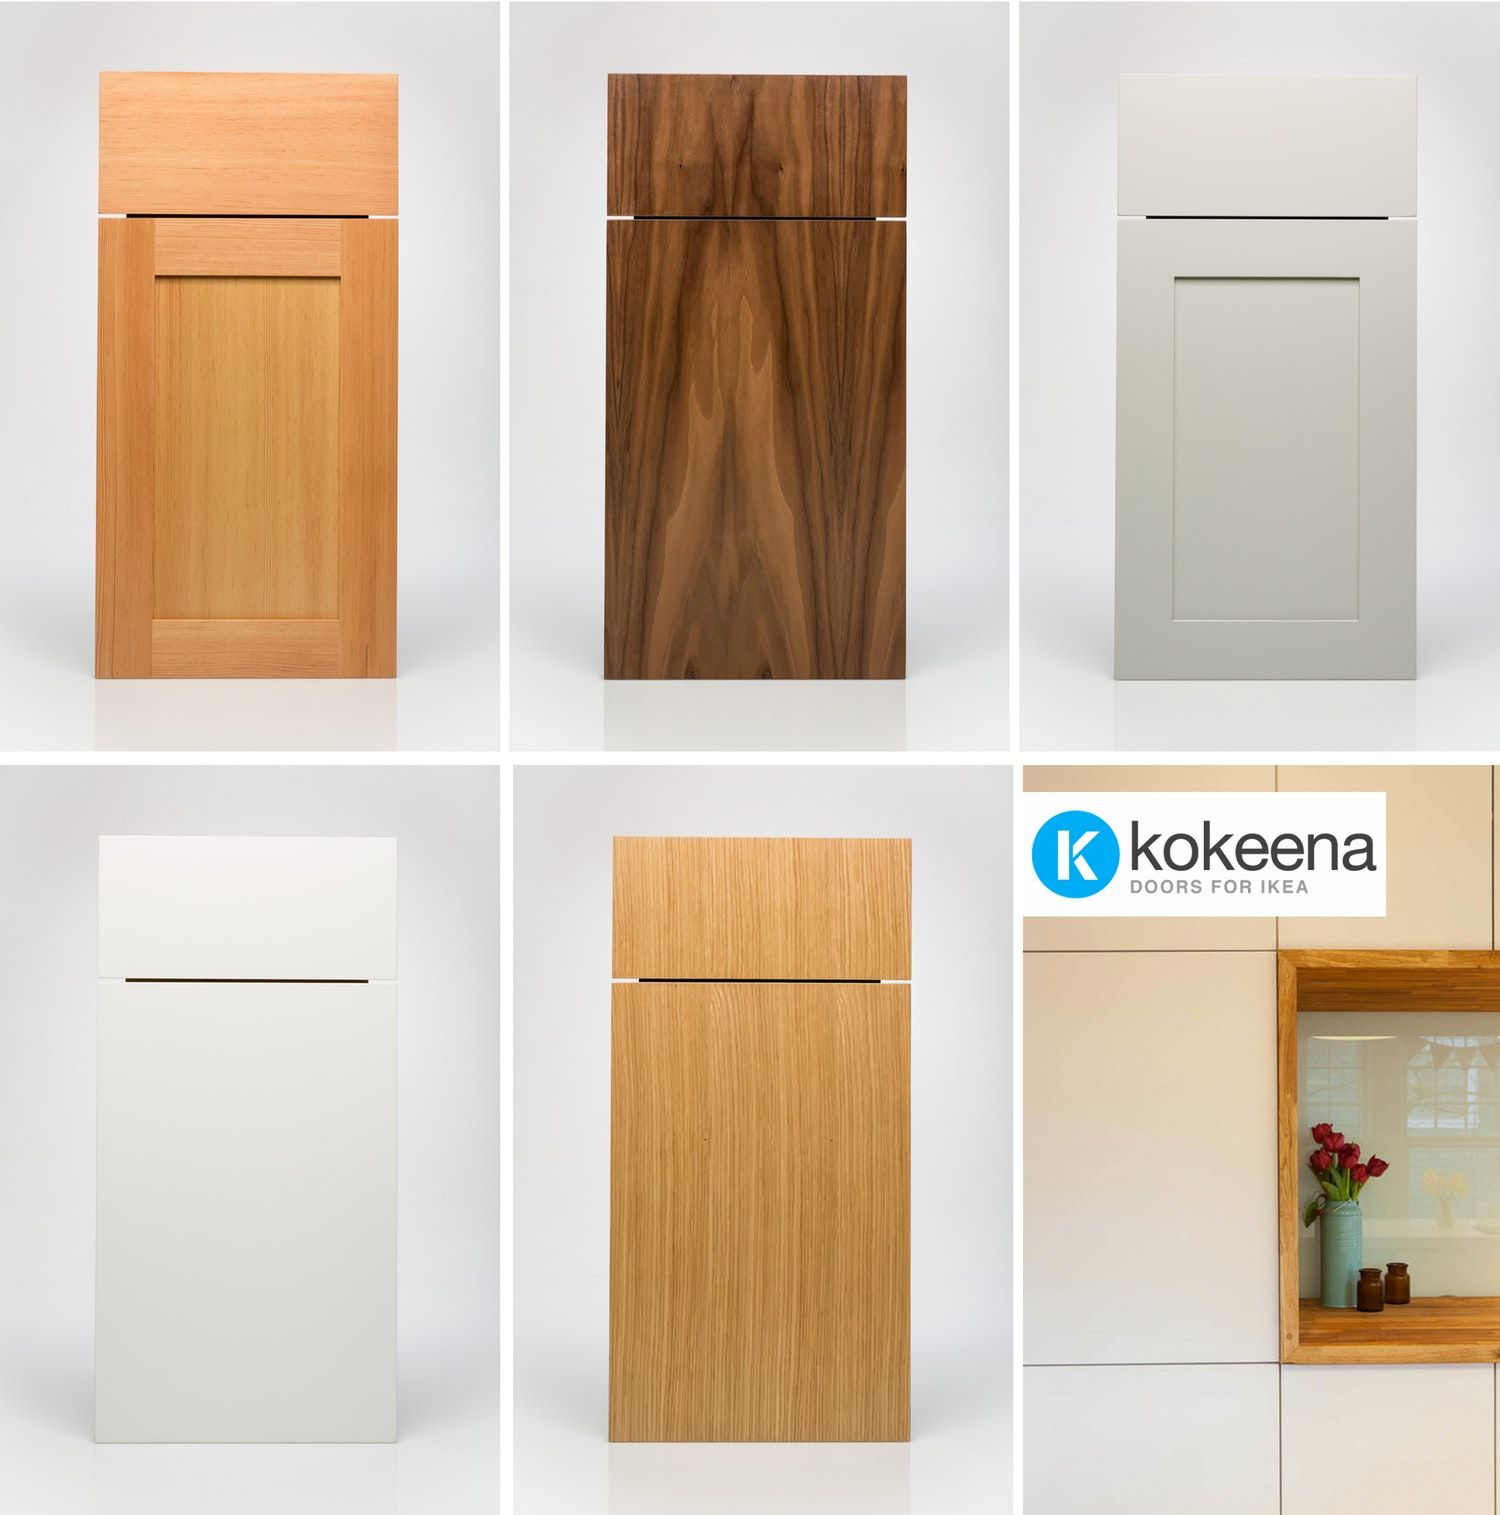 Kokeena Real Wood Ready Made Cabinet Doors For Ikea Akurum Kitchens Solid Wood Kitchen Cabinets Ikea Akurum Solid Wood Kitchens